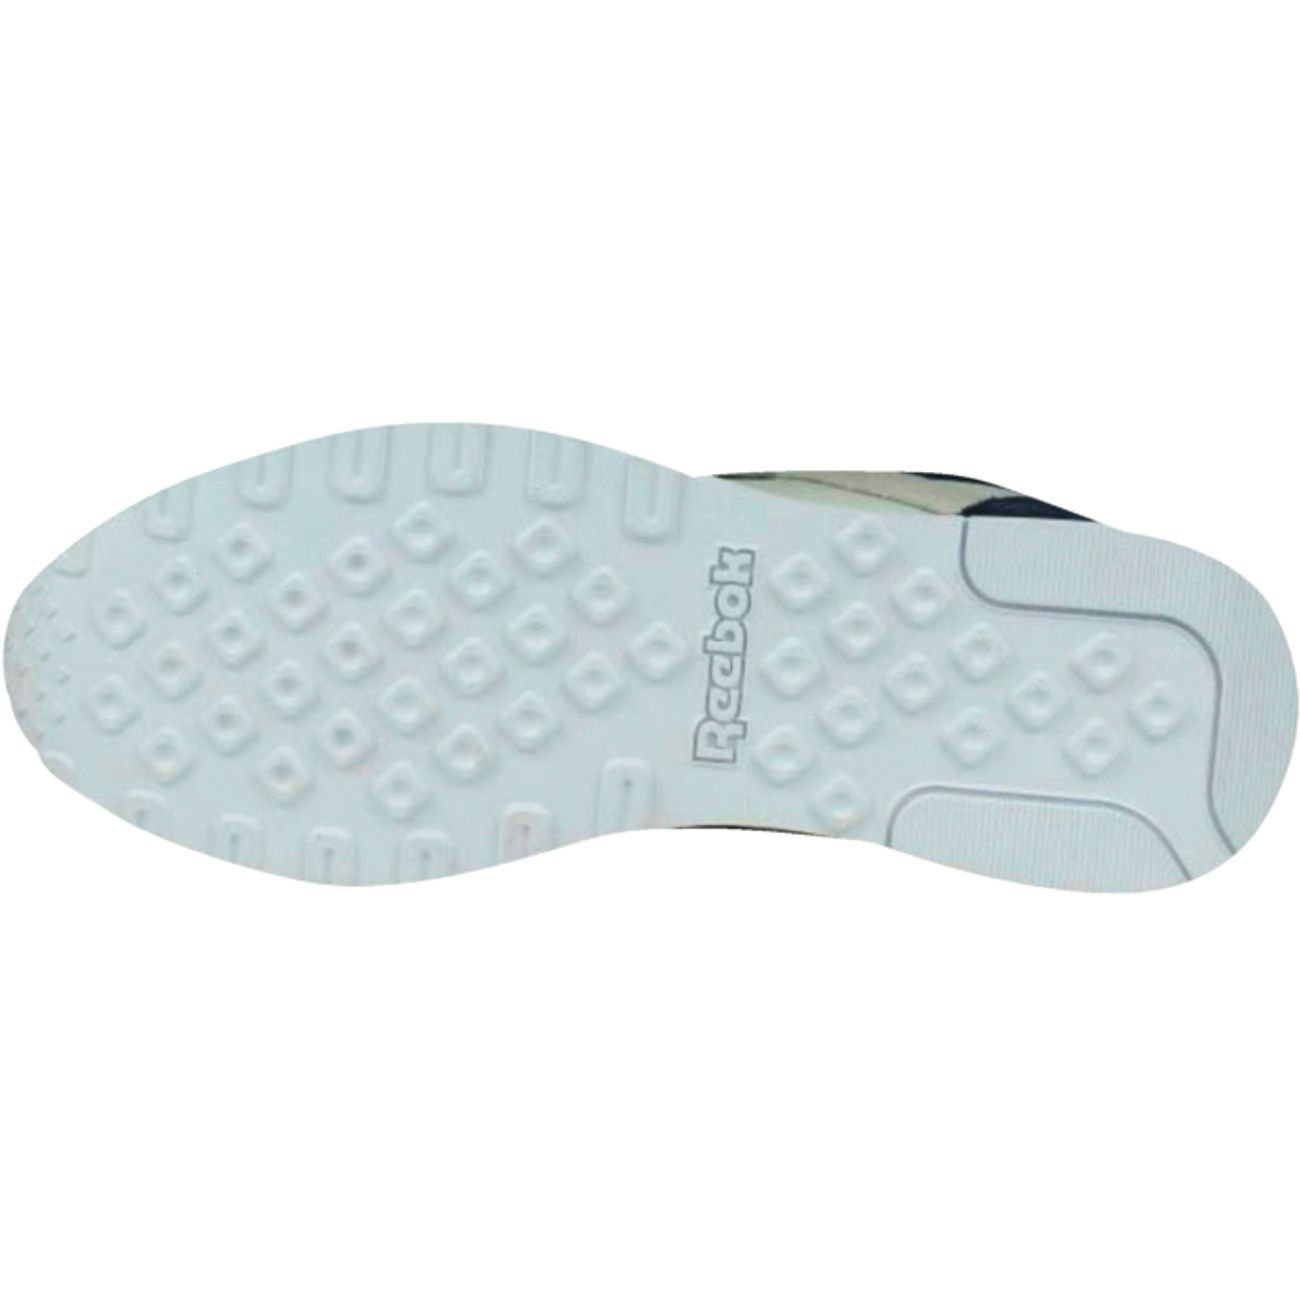 CHAUSSURES BASSES Loisirs homme REEBOK ROYAL ULTRA